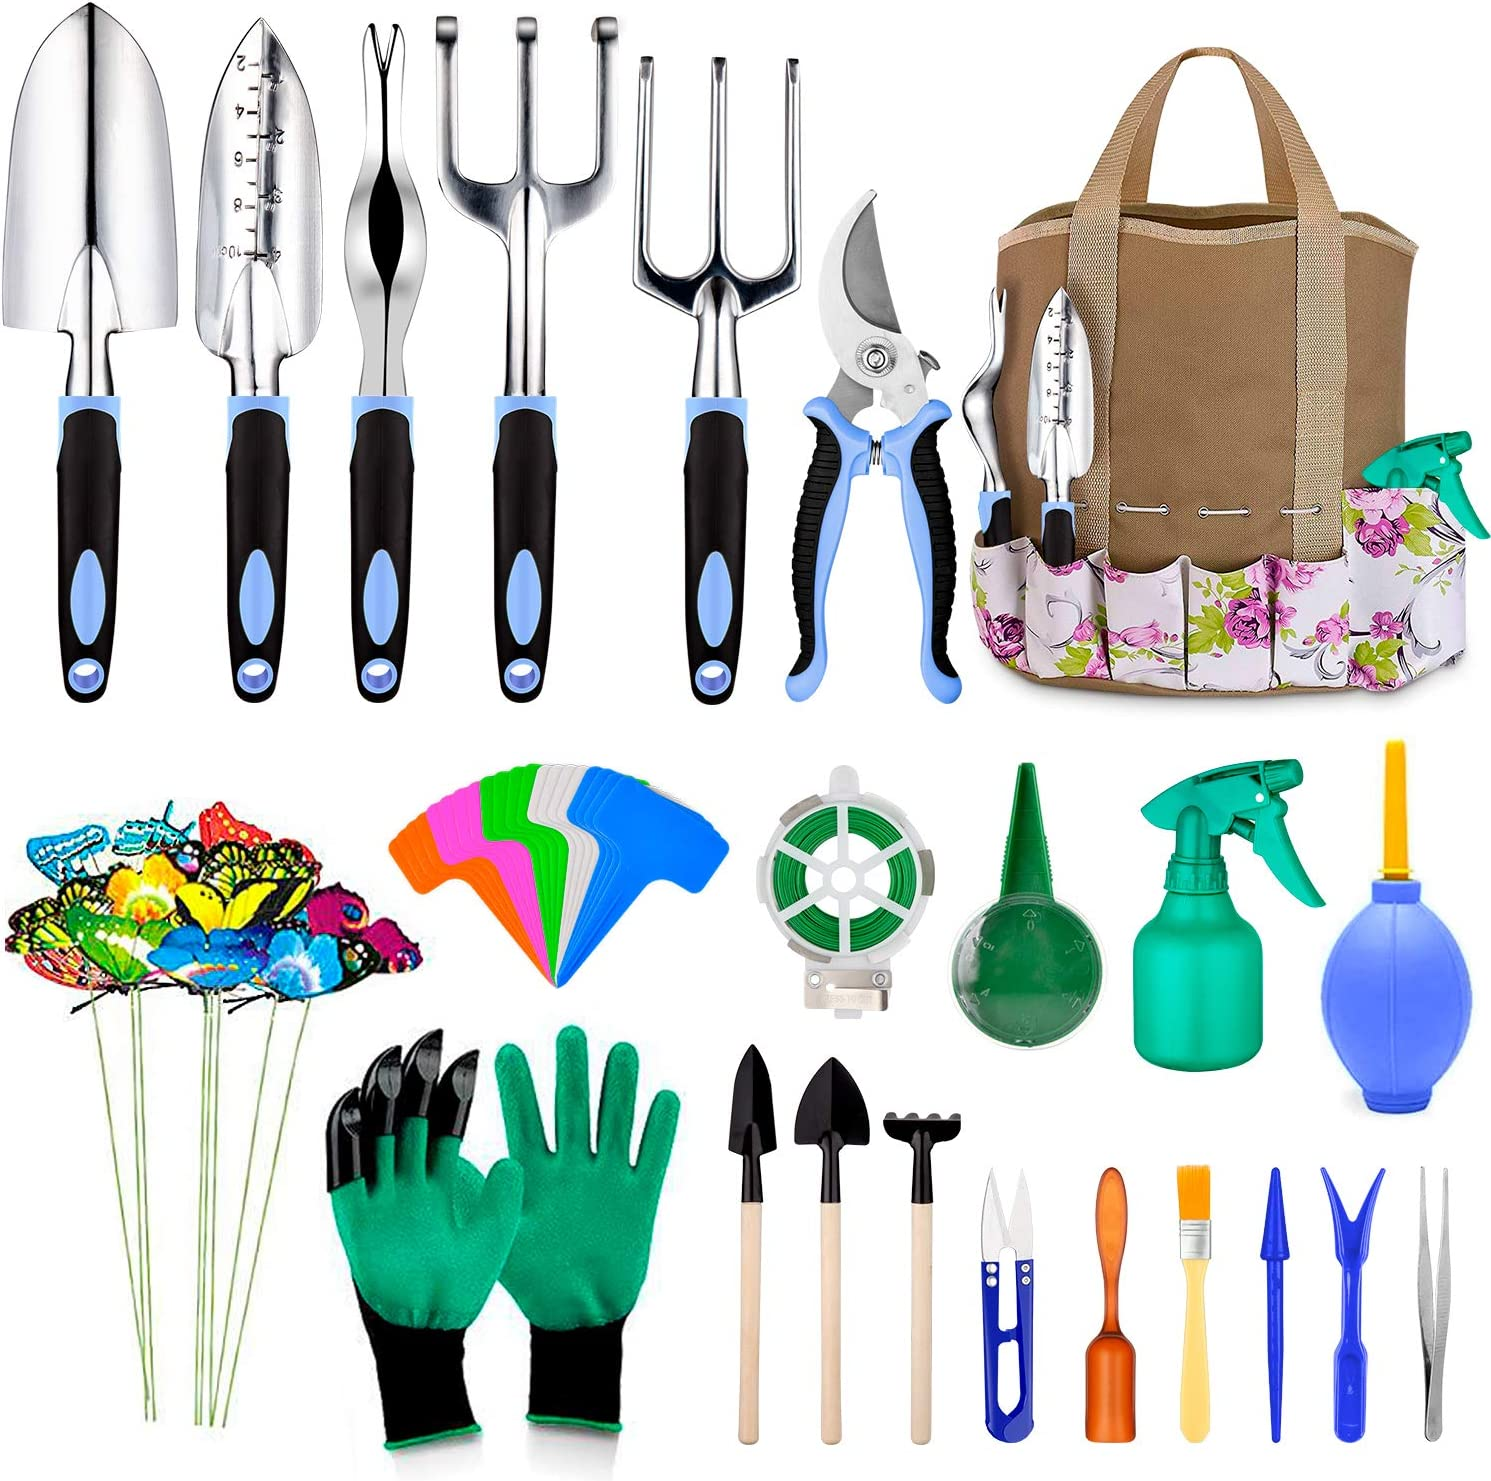 82 Pcs Garden Tools Set, Extra Succulent Tools Set, Heavy Duty Gardening Tools Aluminum with Soft Rubberized Non-Slip Handle Tools, Durable Storage Tote Bag, Gifts for Men (Blue)